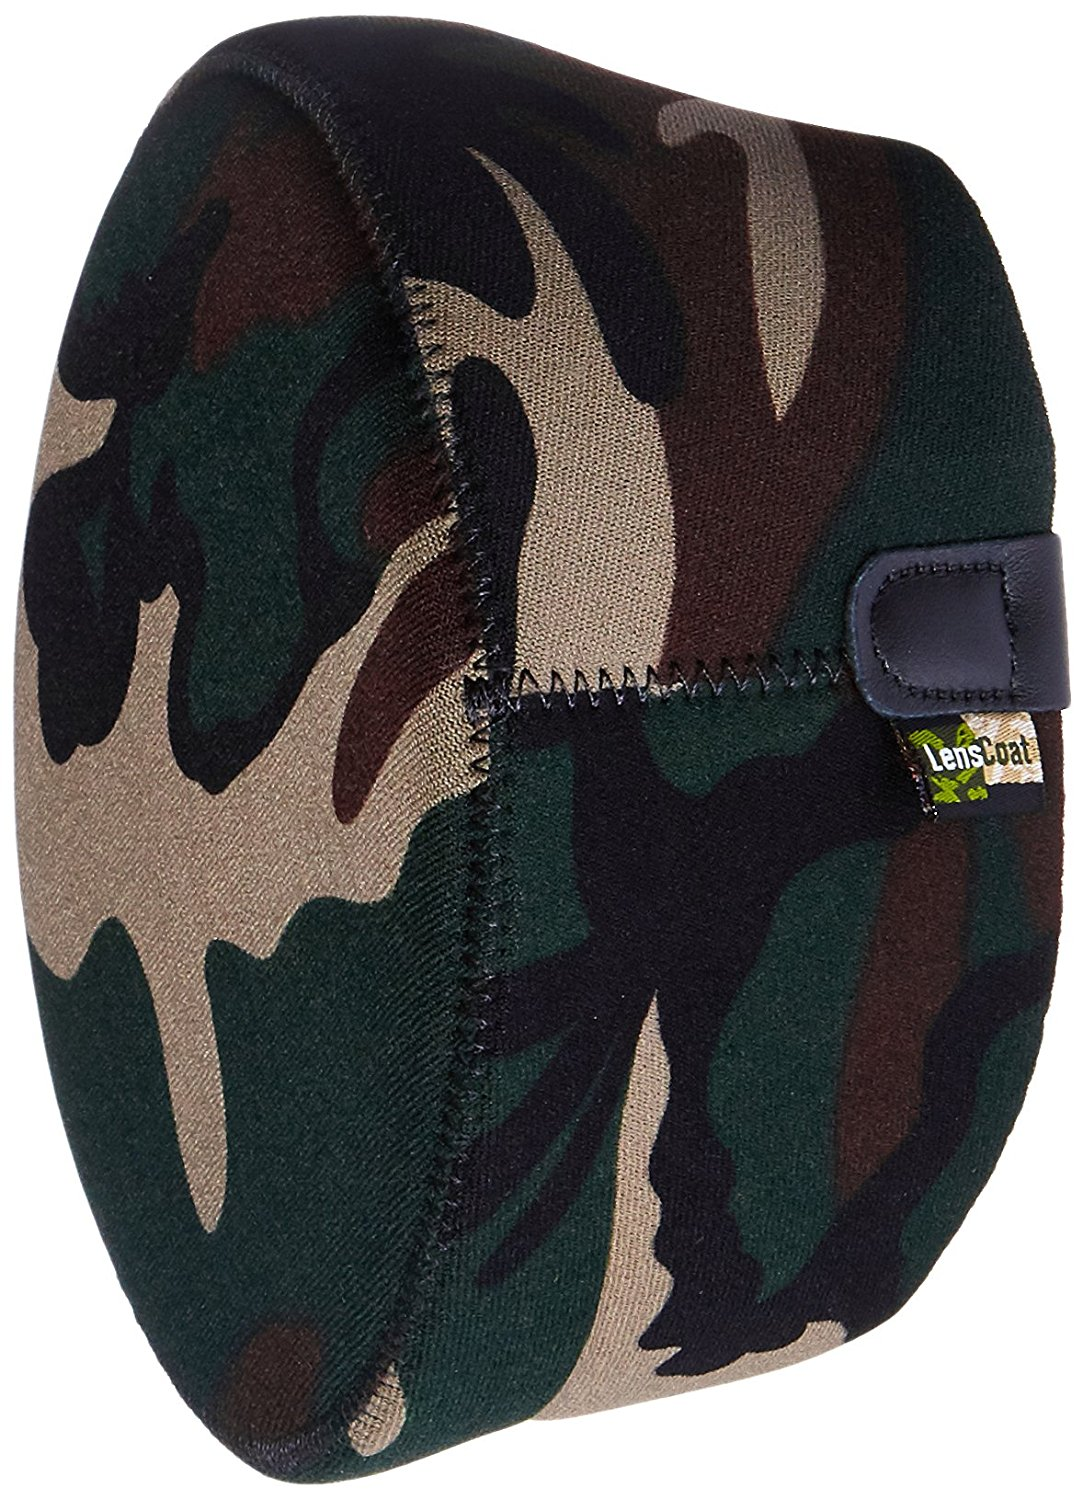 Forest Green Camo LensCoat LCHXXSFG Hoodie XX Small